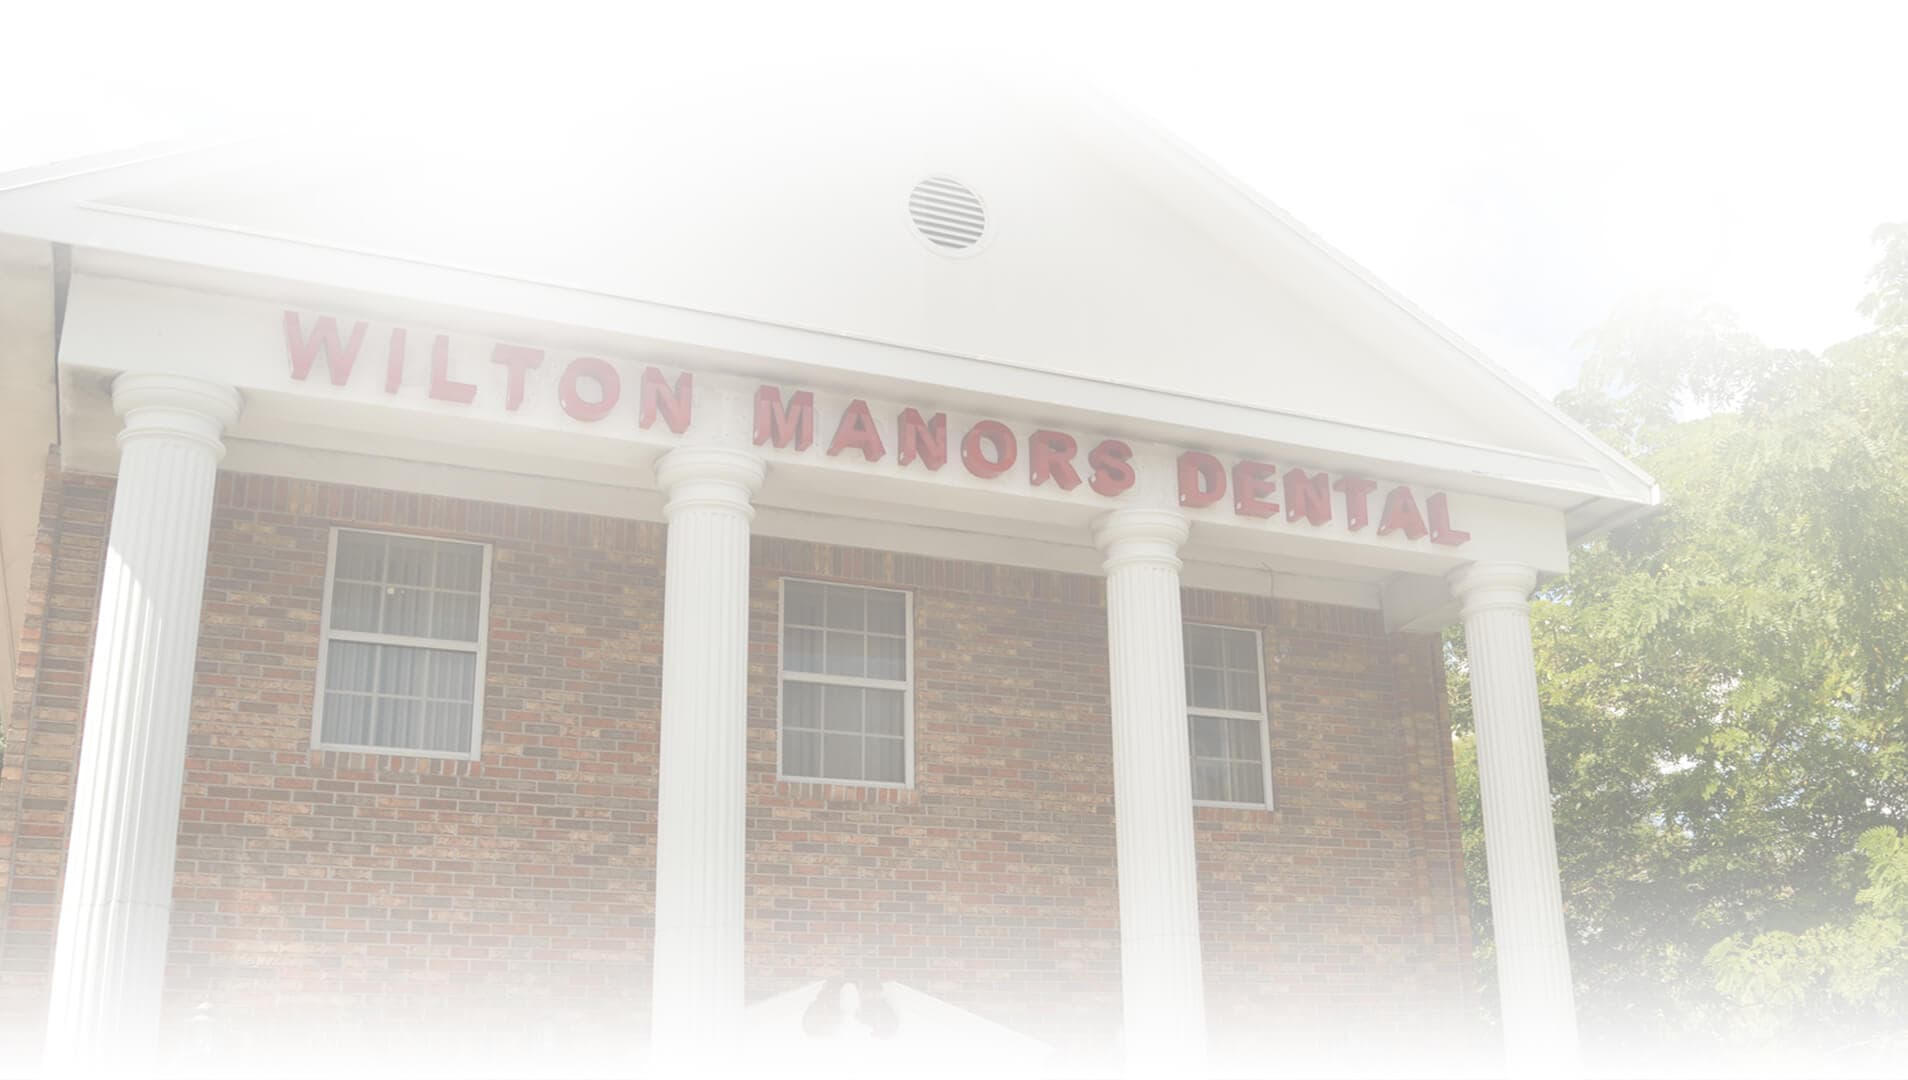 Dentist in Wilton Manors